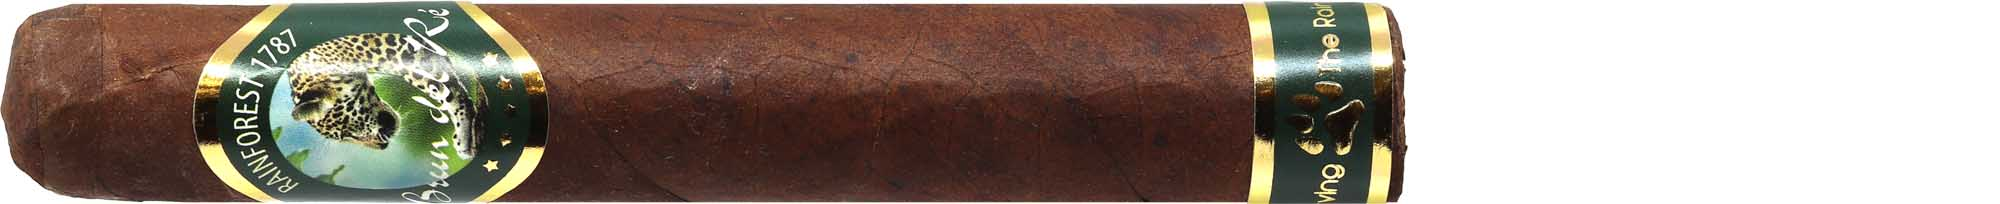 Brun del Ré 1787 Rainforest Jaguar Long Robusto